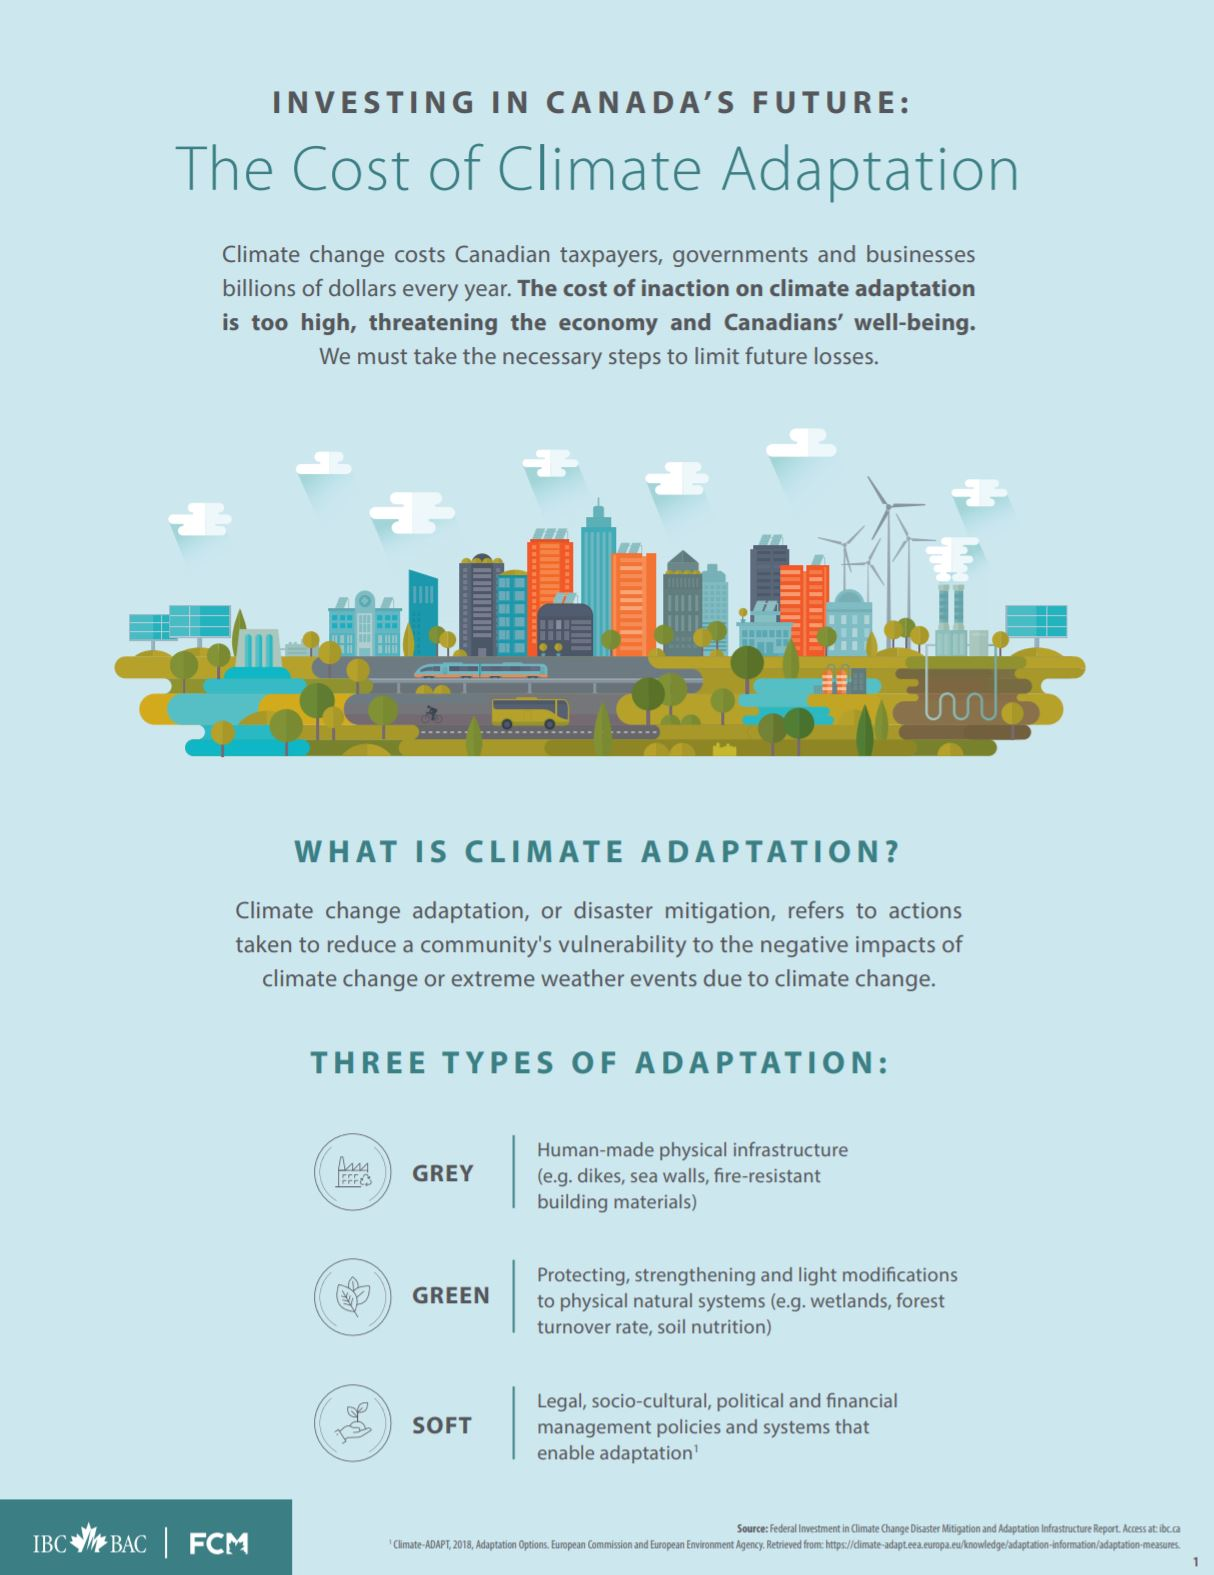 The Cost of Climate Adaptation Summary